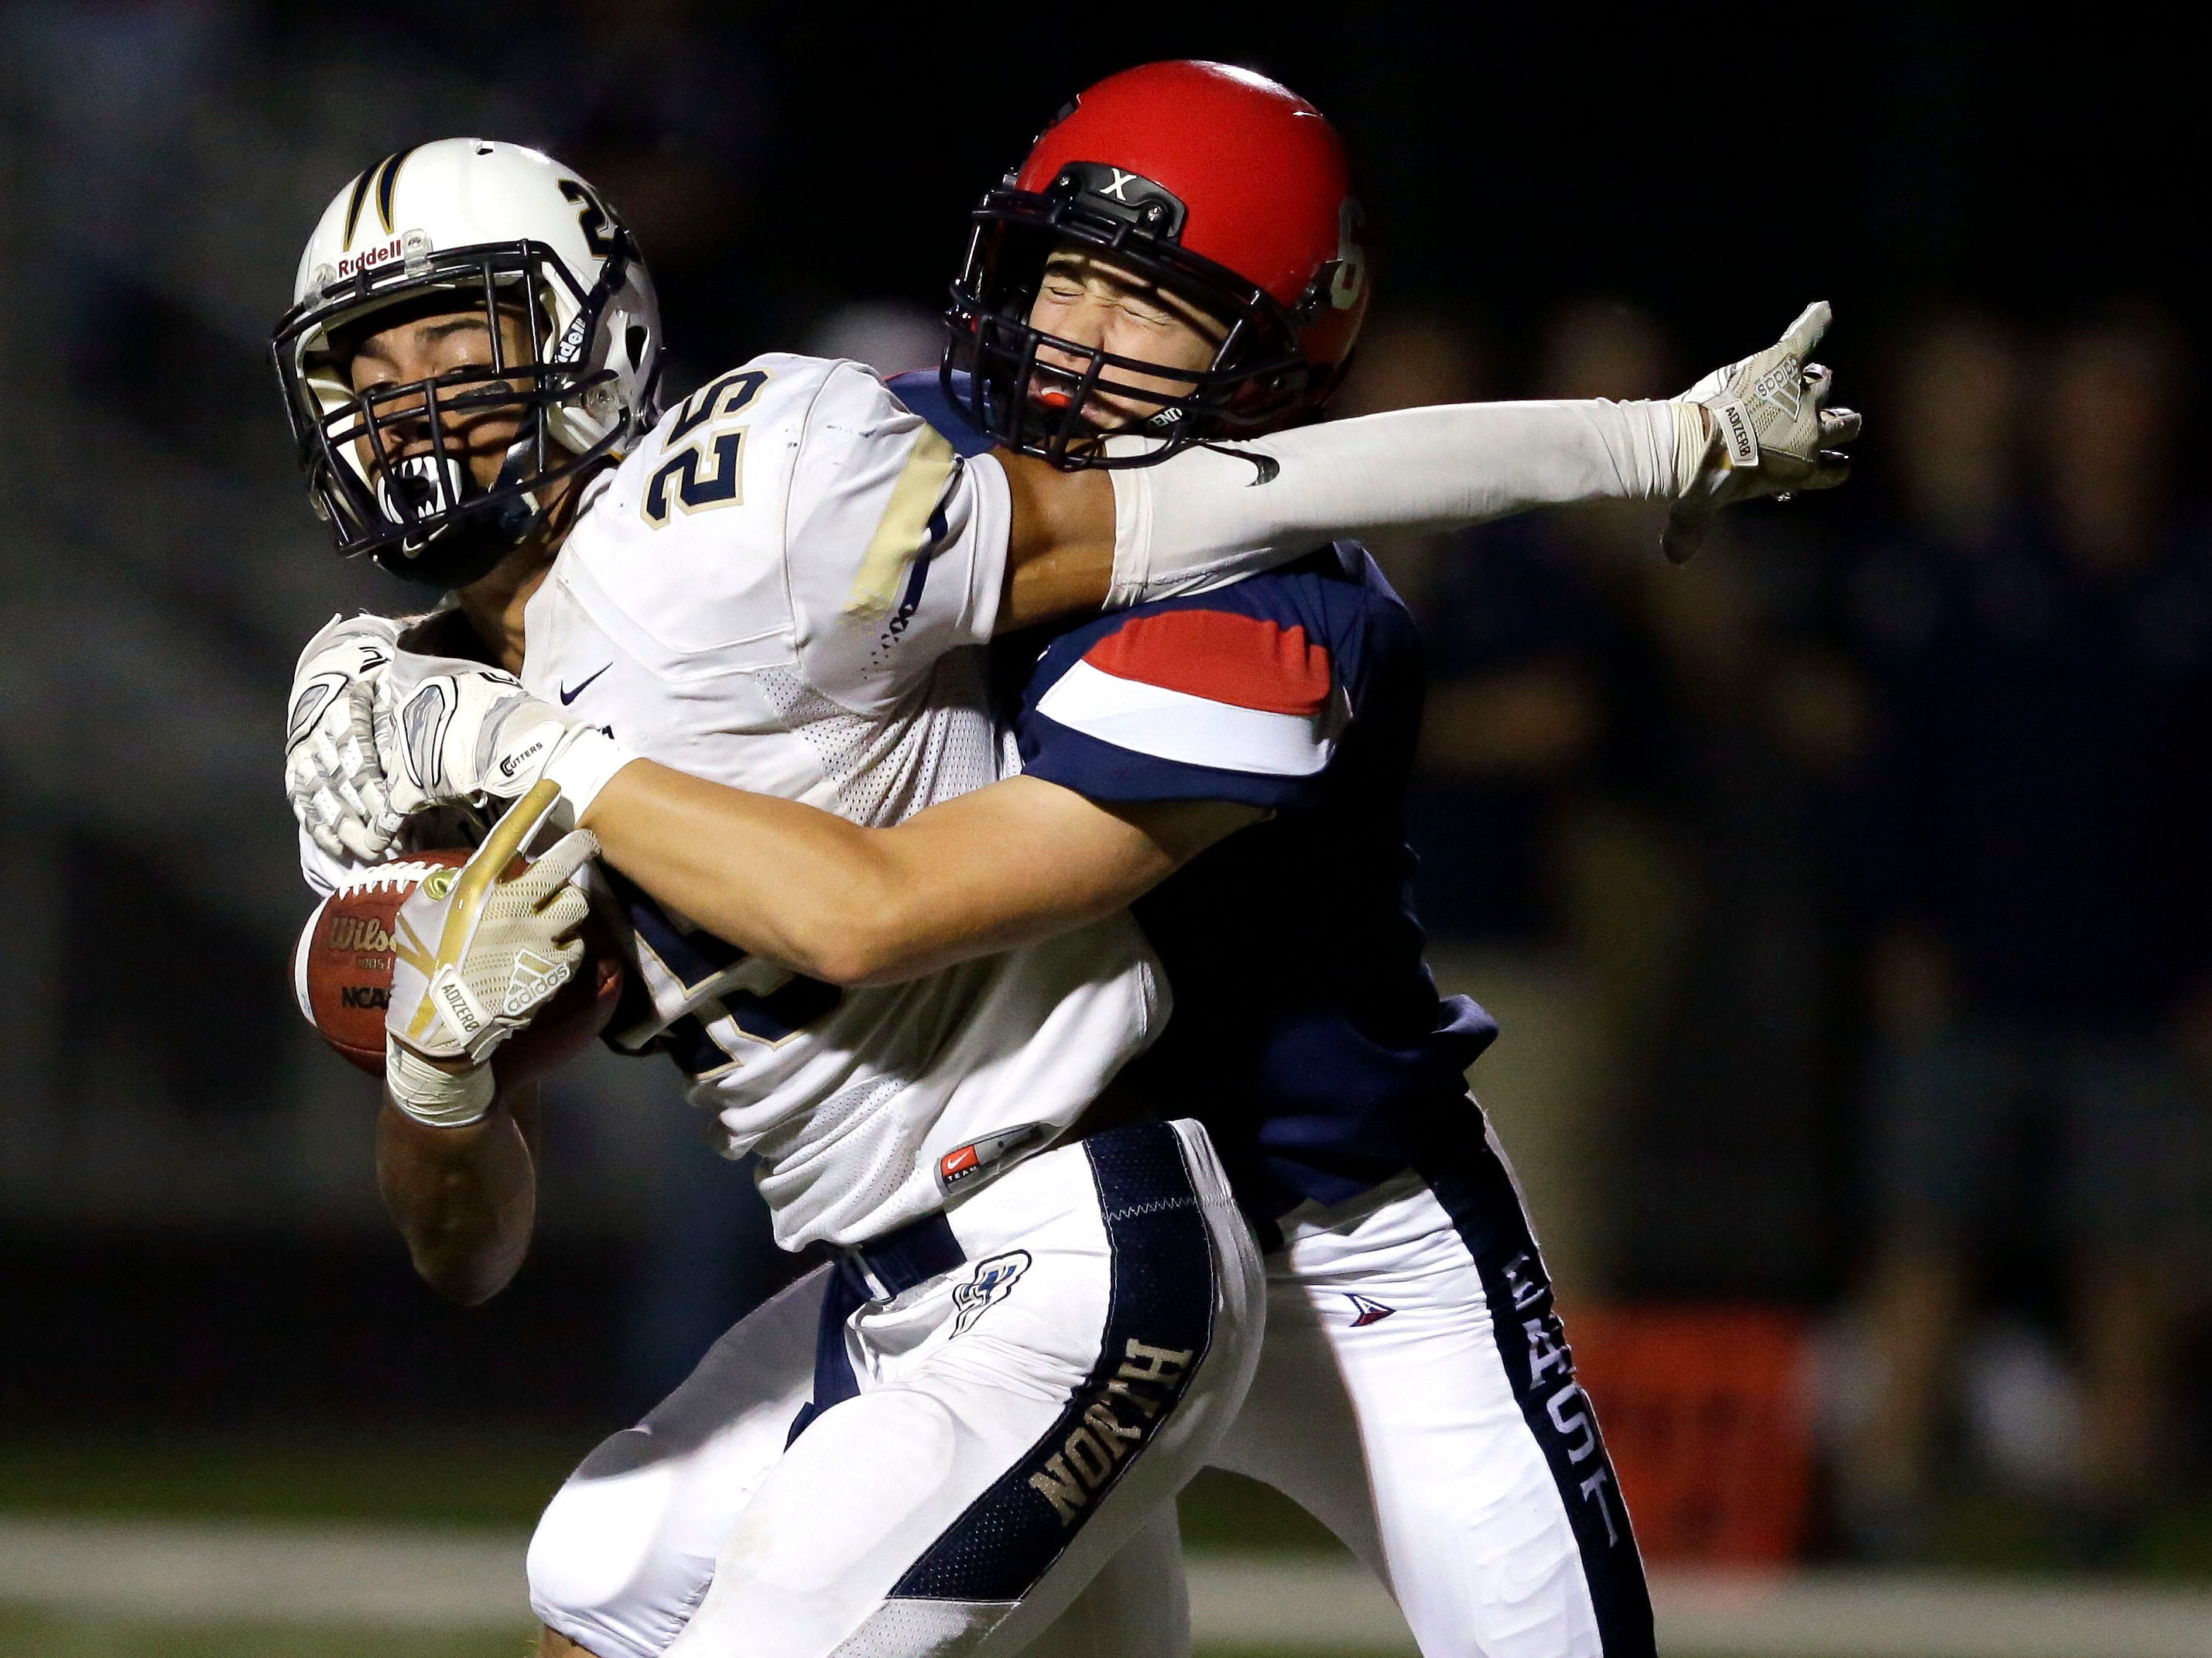 Terrell Williams of Appleton North works to get away from the Appleton East defense in a Valley Football Association game Friday, September 14, 2018, at Appleton East High School in Appleton, Wis.Ron Page/USA TODAY NETWORK-Wisconsin